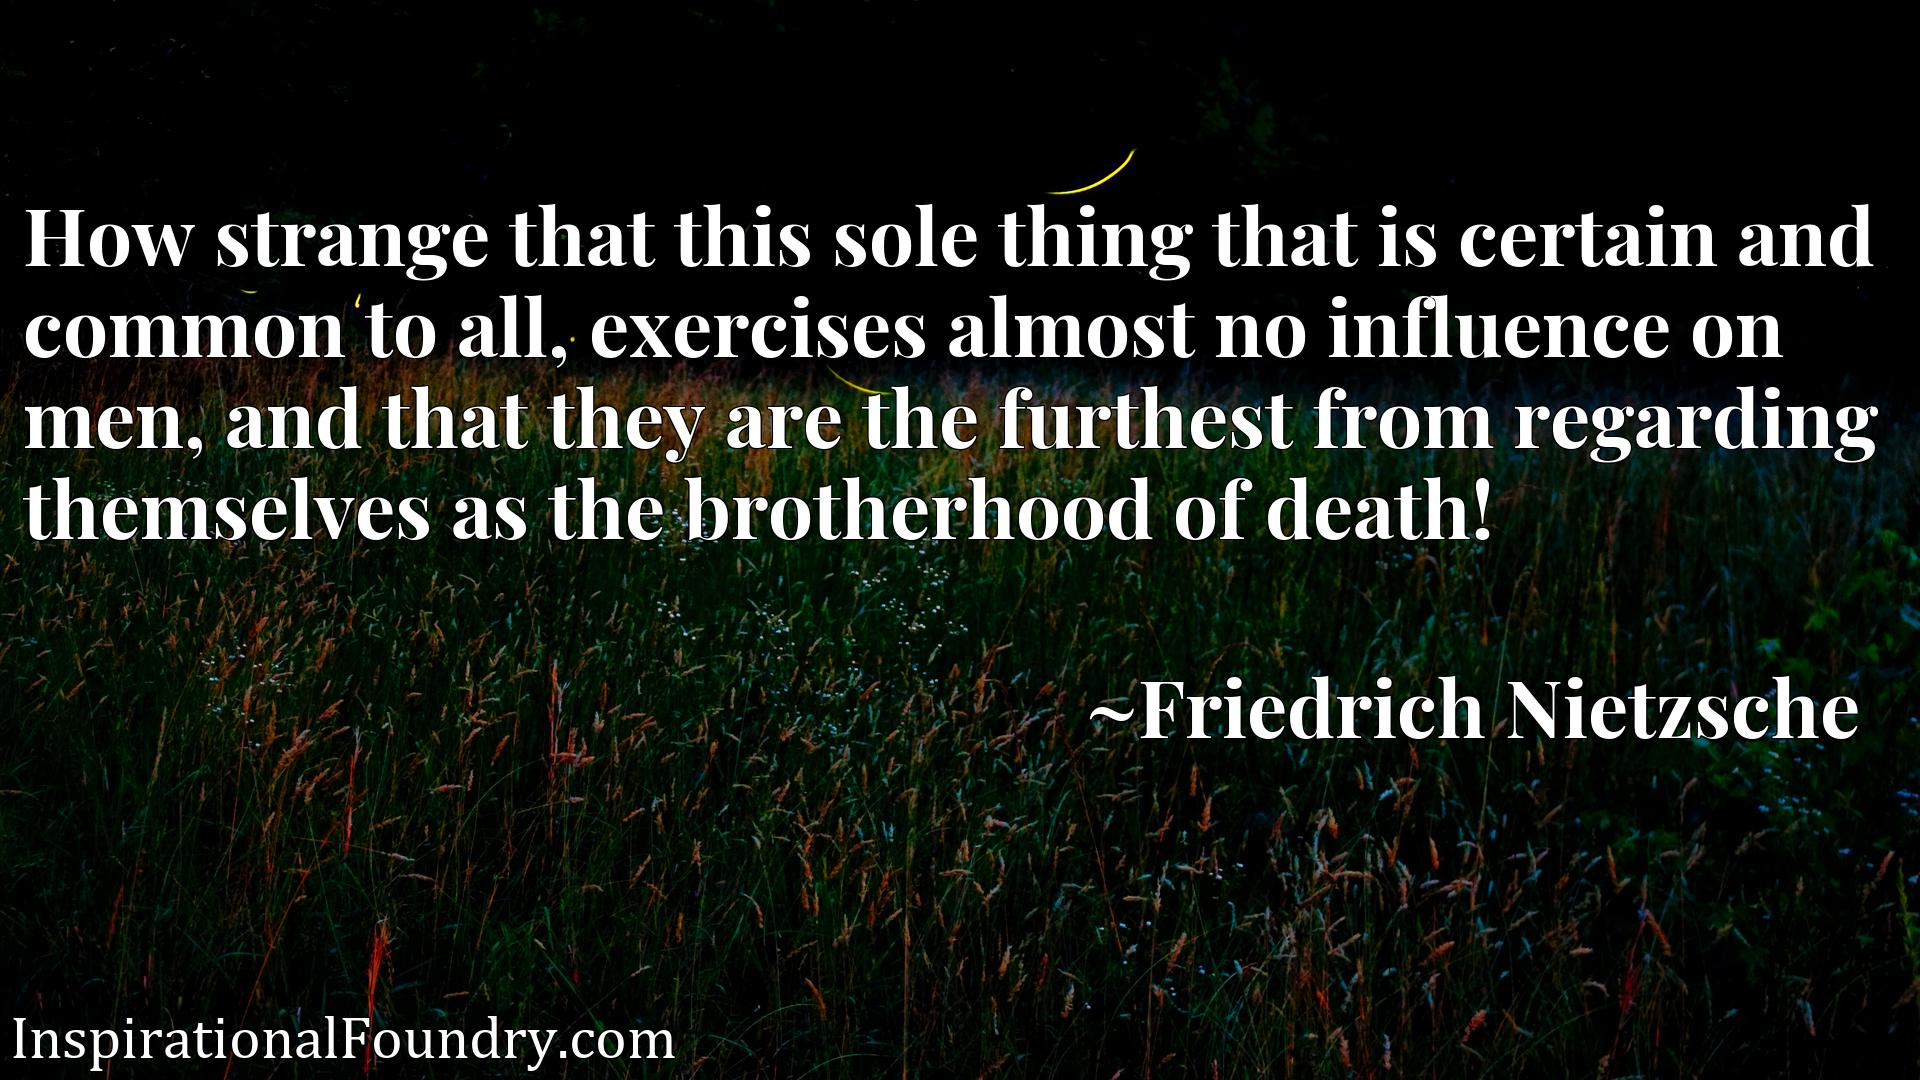 How strange that this sole thing that is certain and common to all, exercises almost no influence on men, and that they are the furthest from regarding themselves as the brotherhood of death!